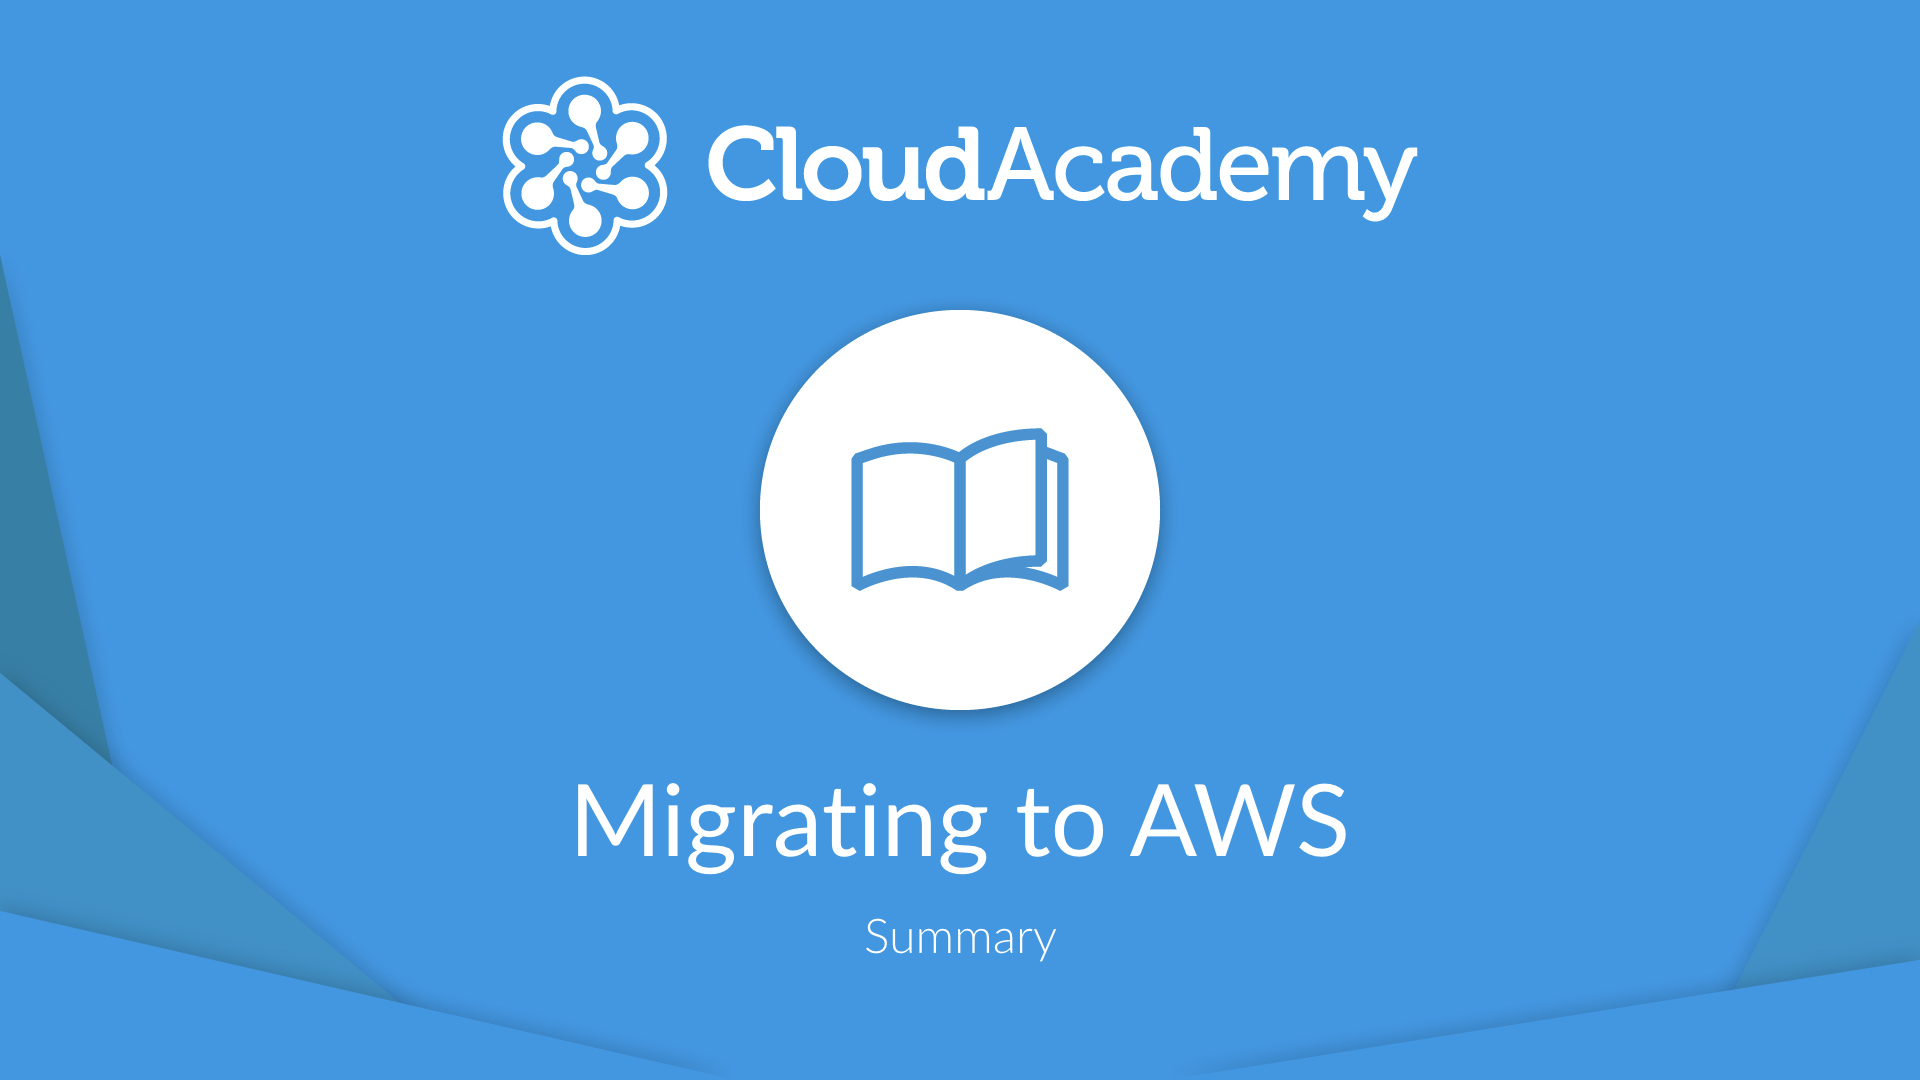 Migrating to AWS - Summary